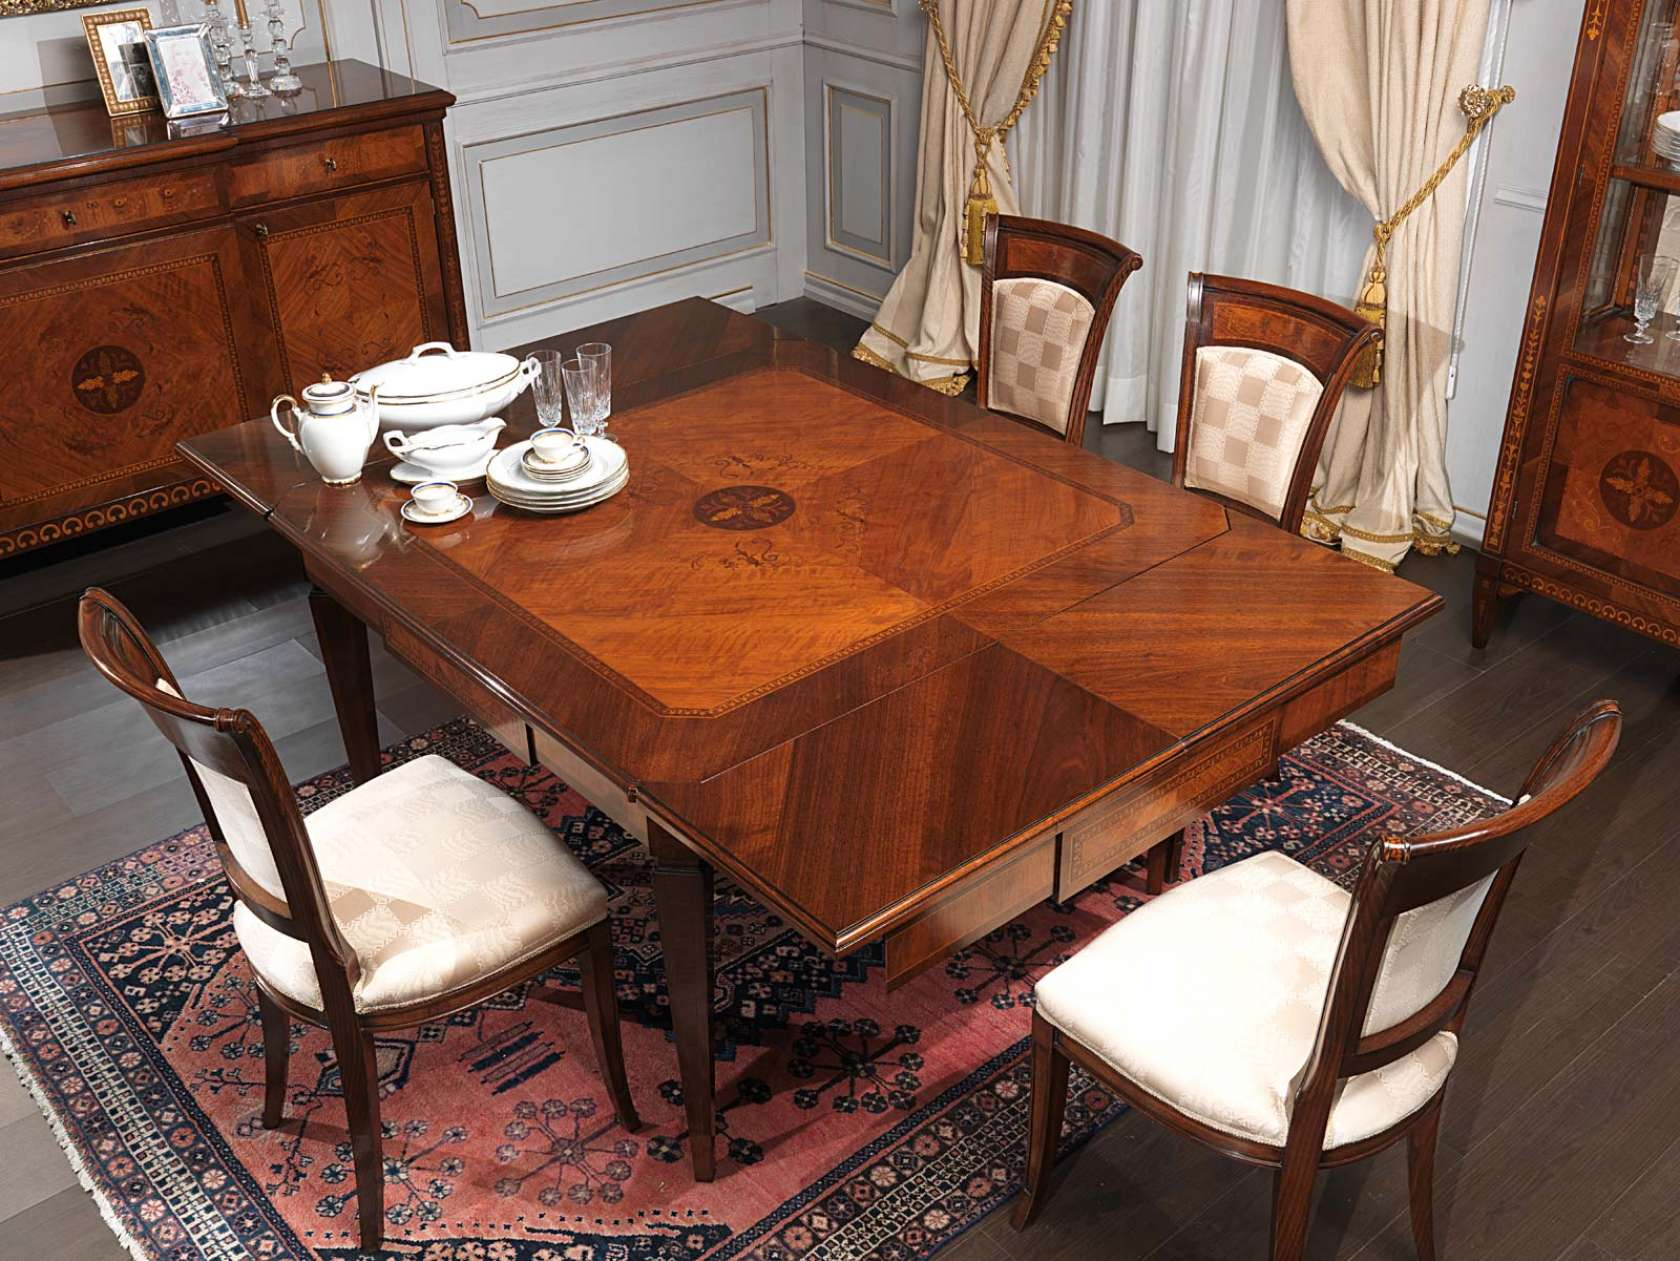 classic dining room maggiolini collection vimercati classic classic dining room maggiolini collection vimercati classic furniture